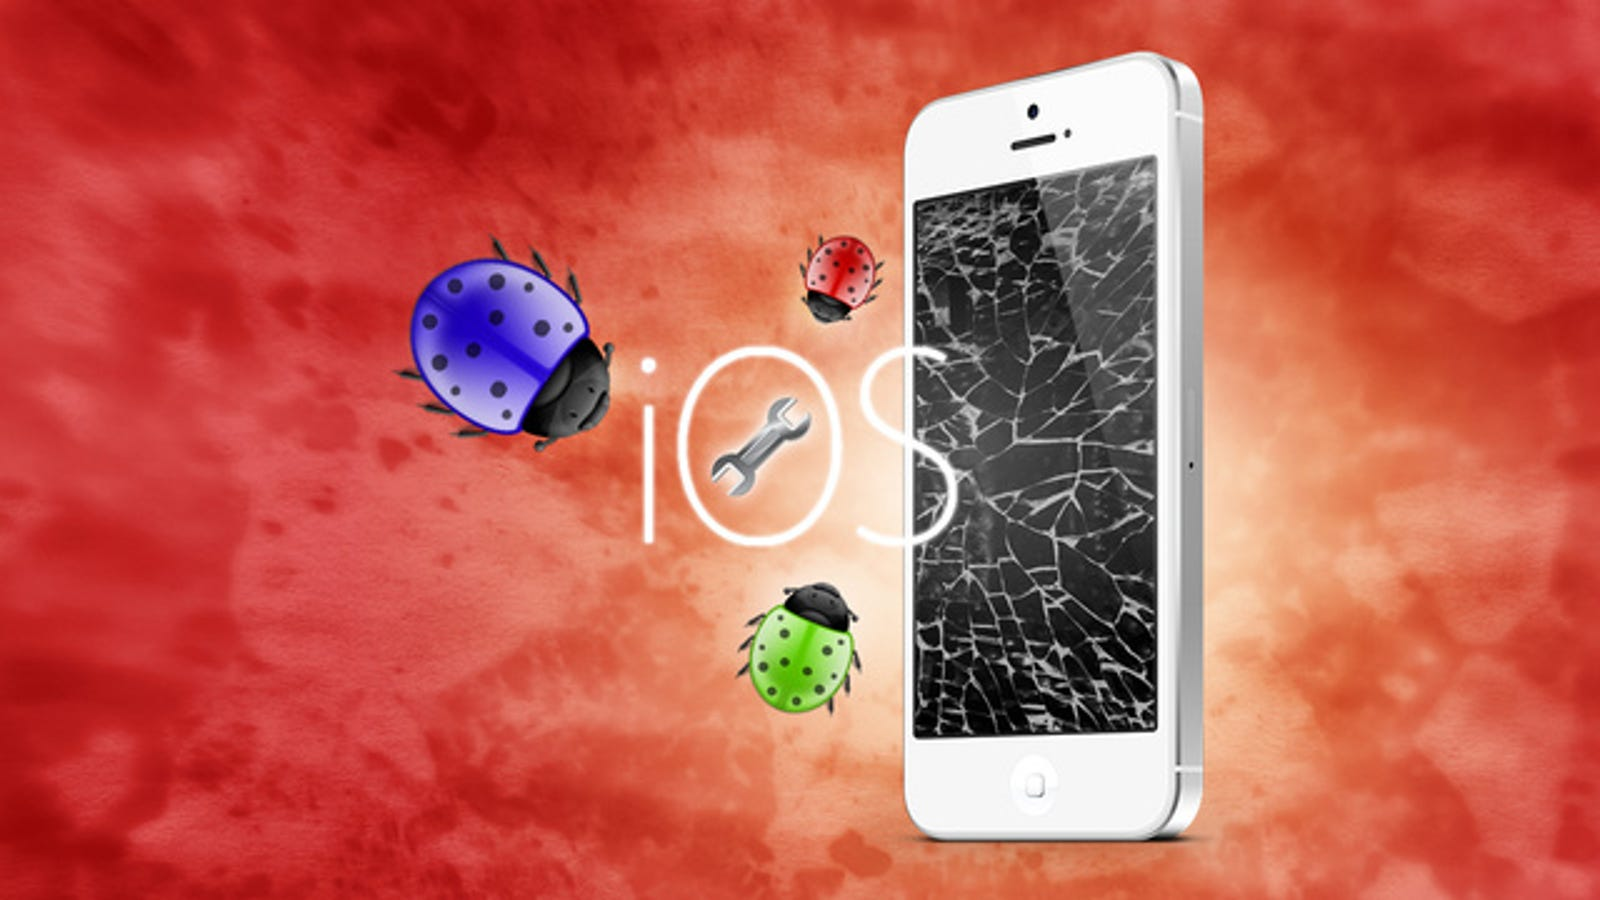 iOS 7's Most Common Bugs (and How to Fix Them)